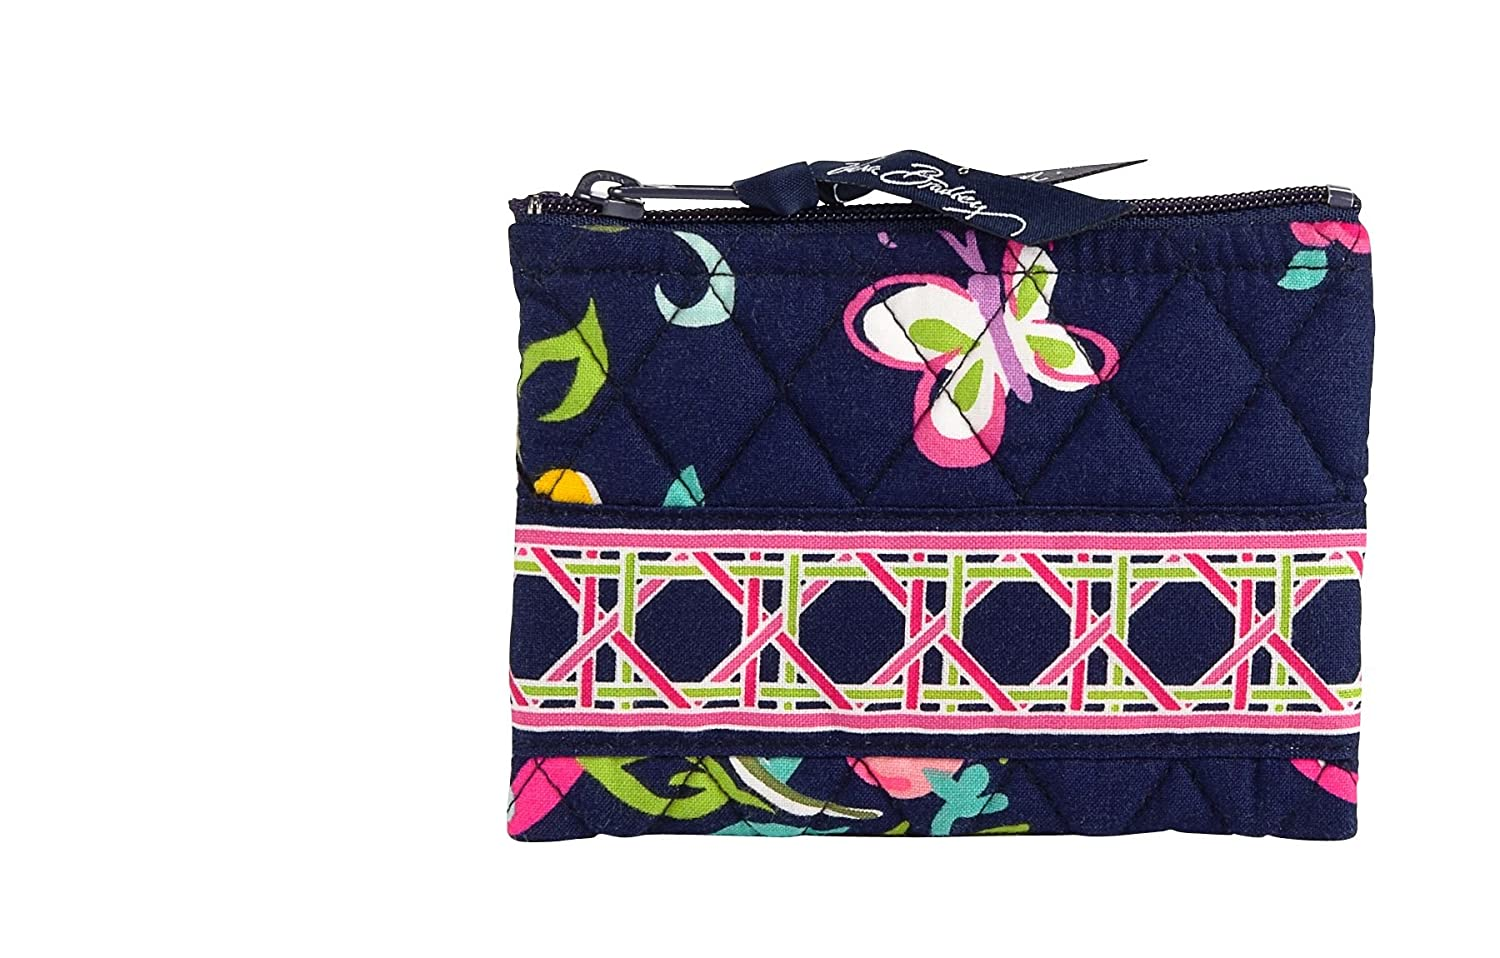 Amazon.com: Vera Bradley Coin Purse: Shoes